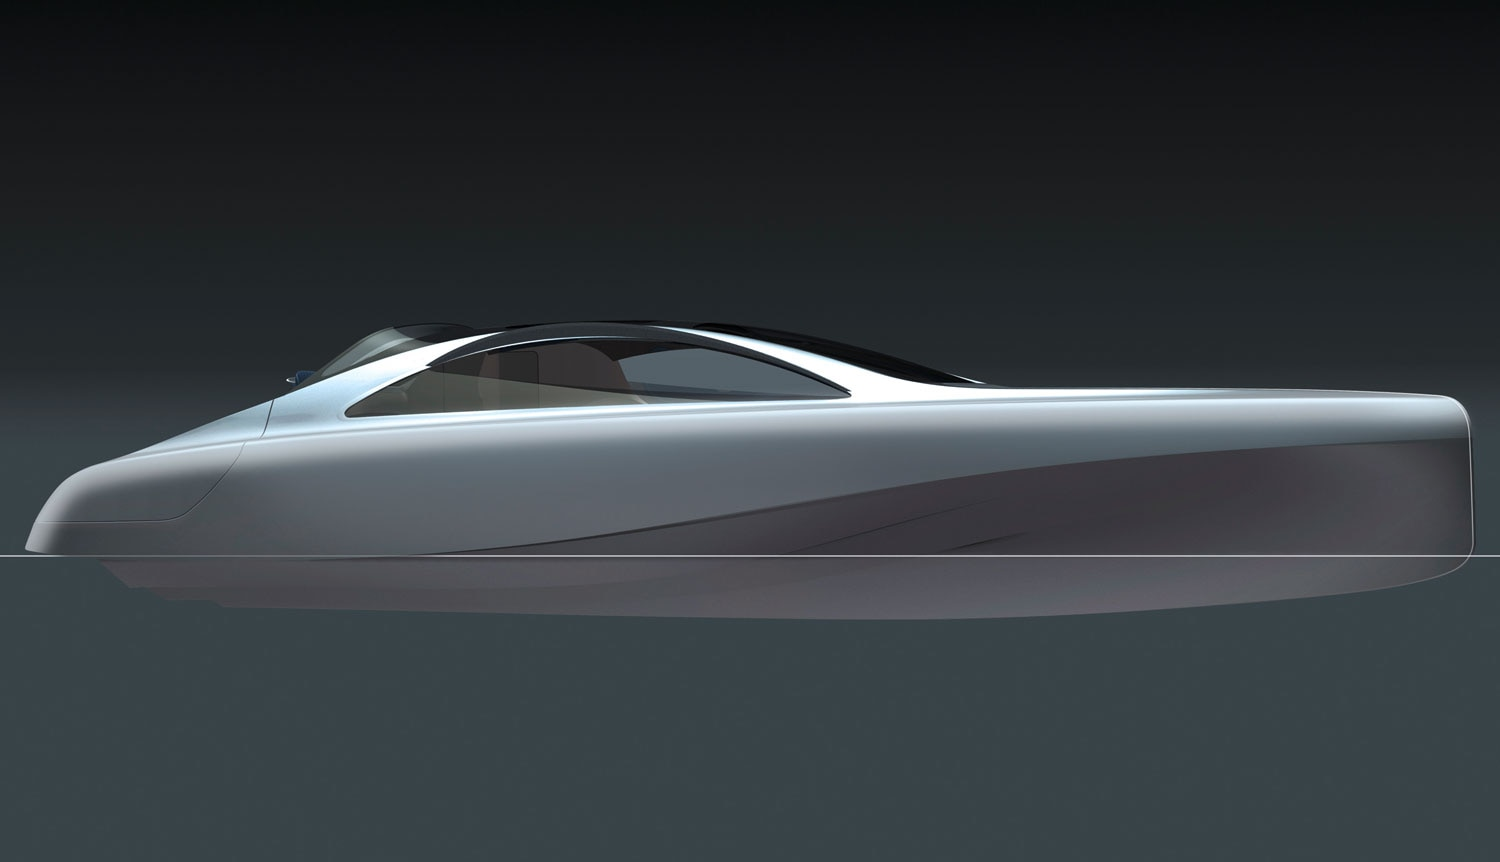 Mercedes Benz Designed Silver Arrow Of The Seas Yacht Side Sketch 021